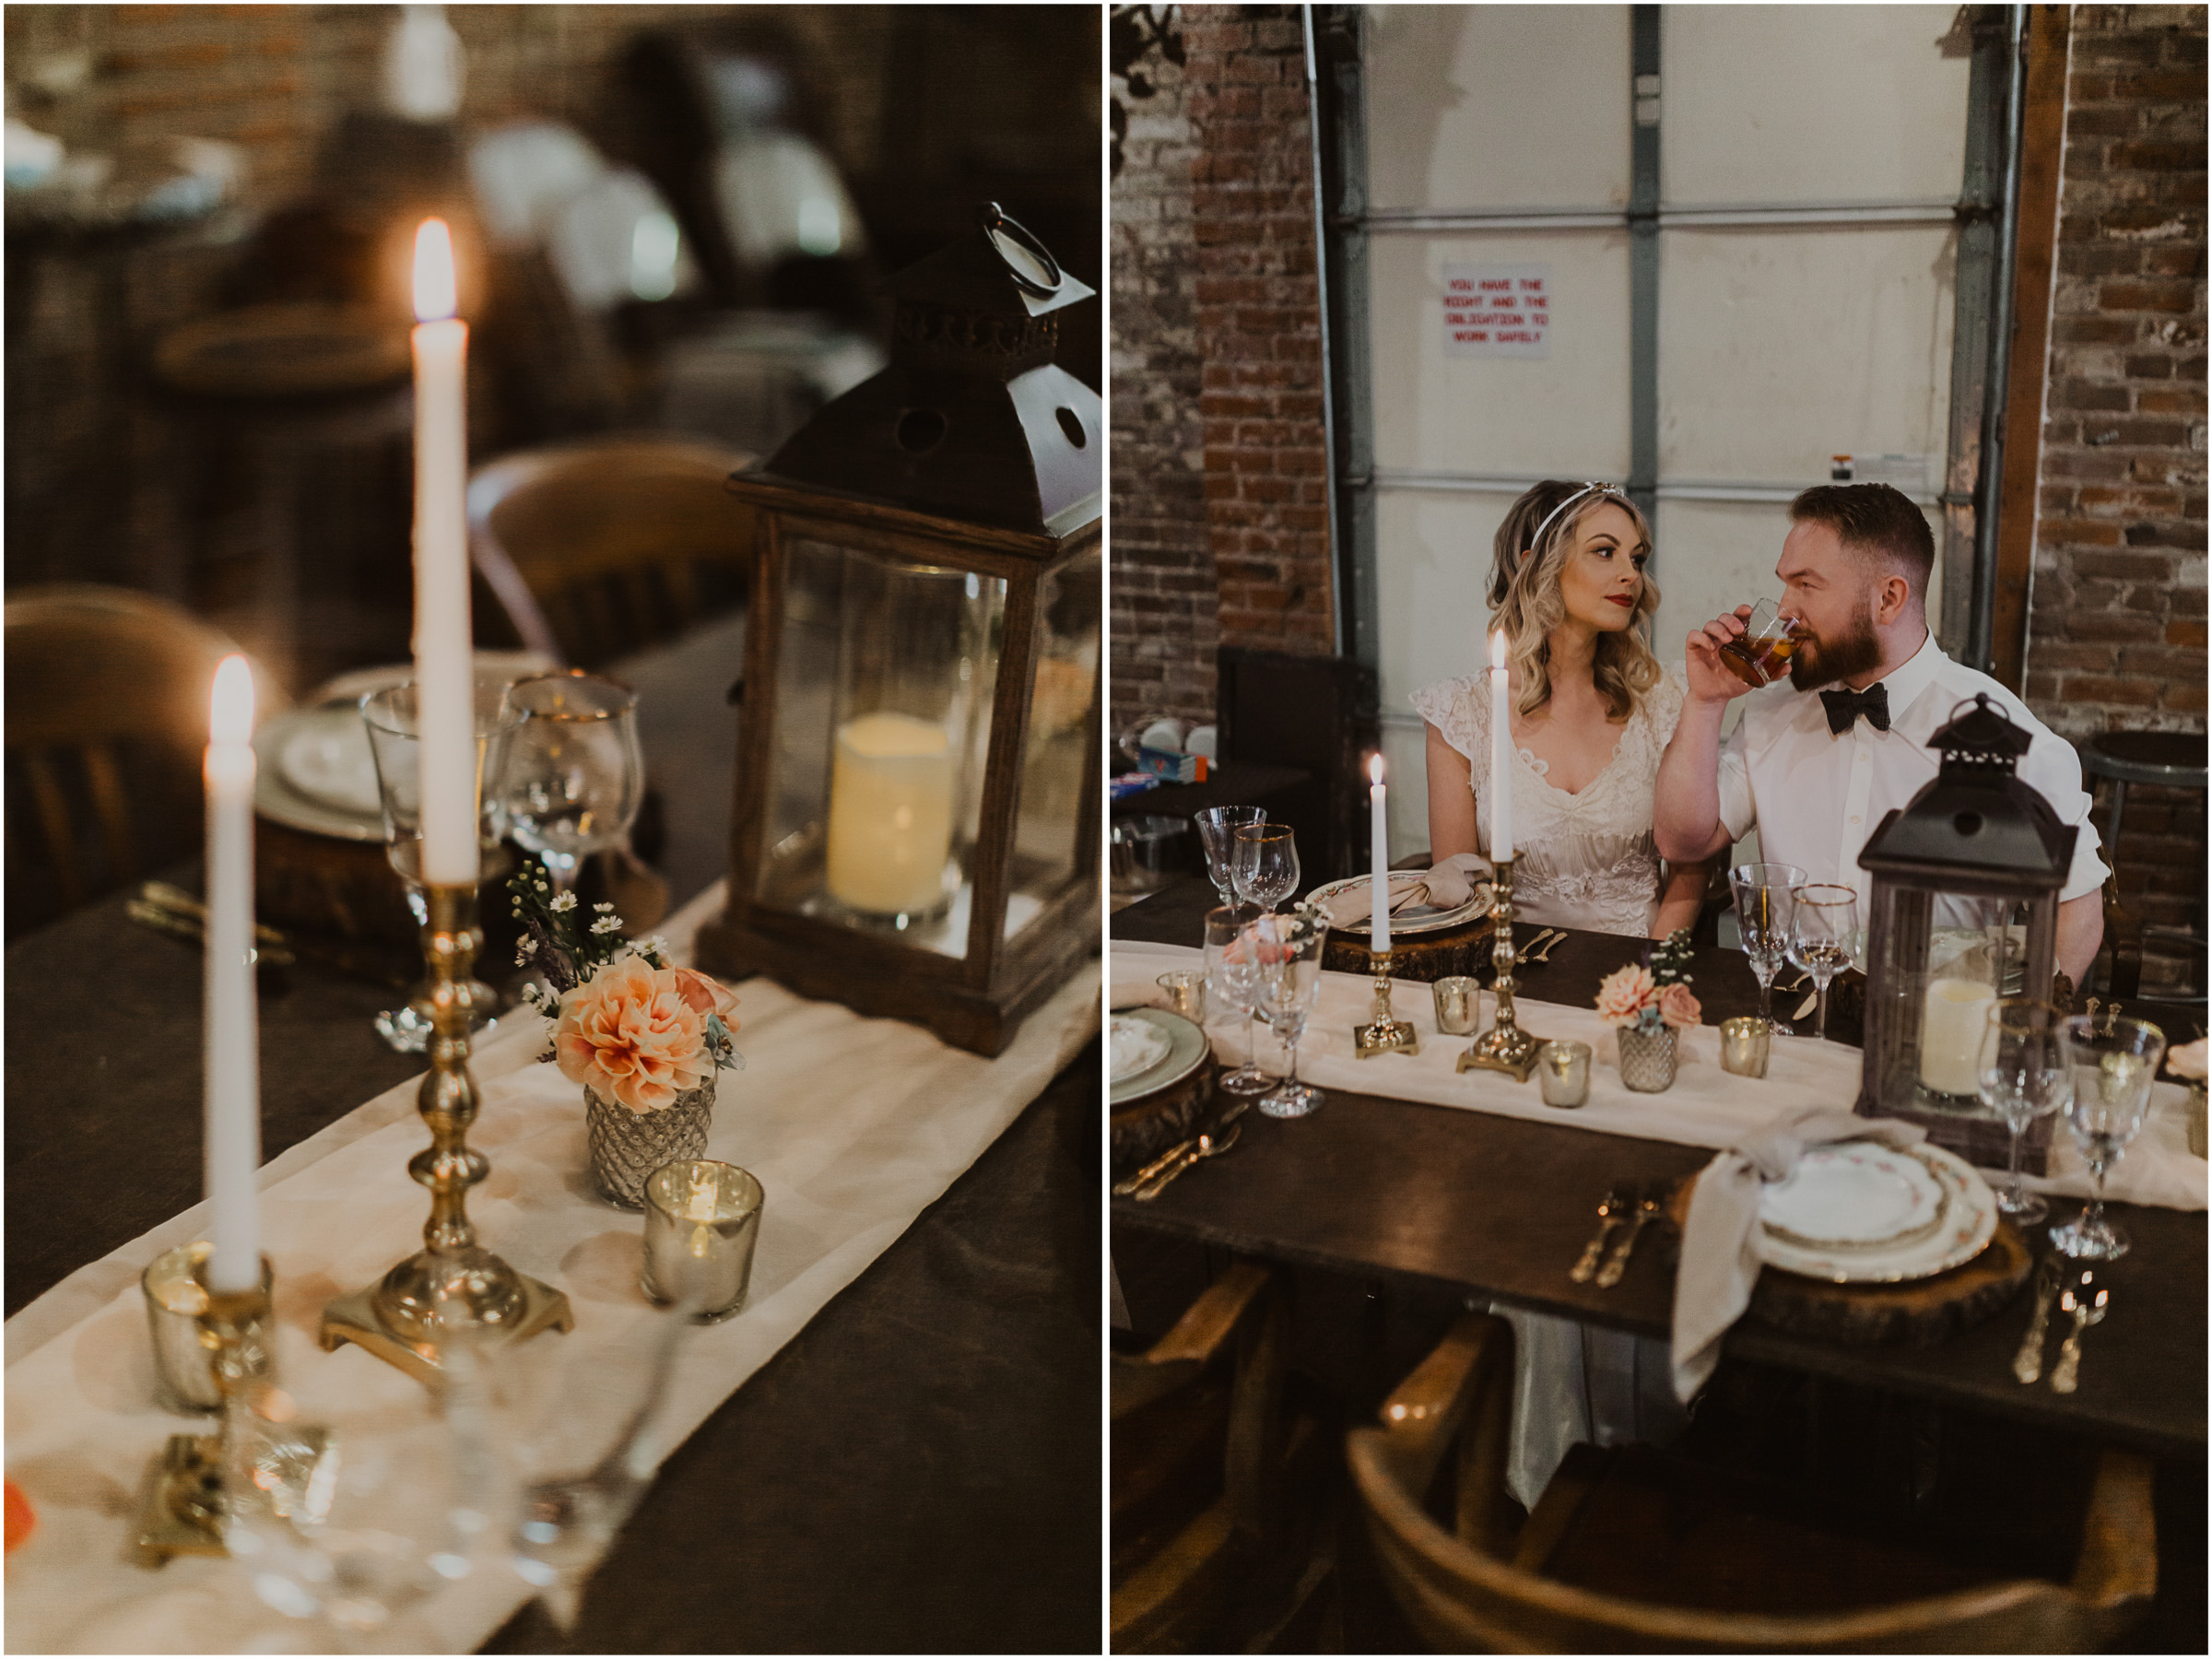 alyssa barletter photography styled shoot wedding inspiration kansas city west bottoms photographer motorcycle edgy intimate-13.jpg